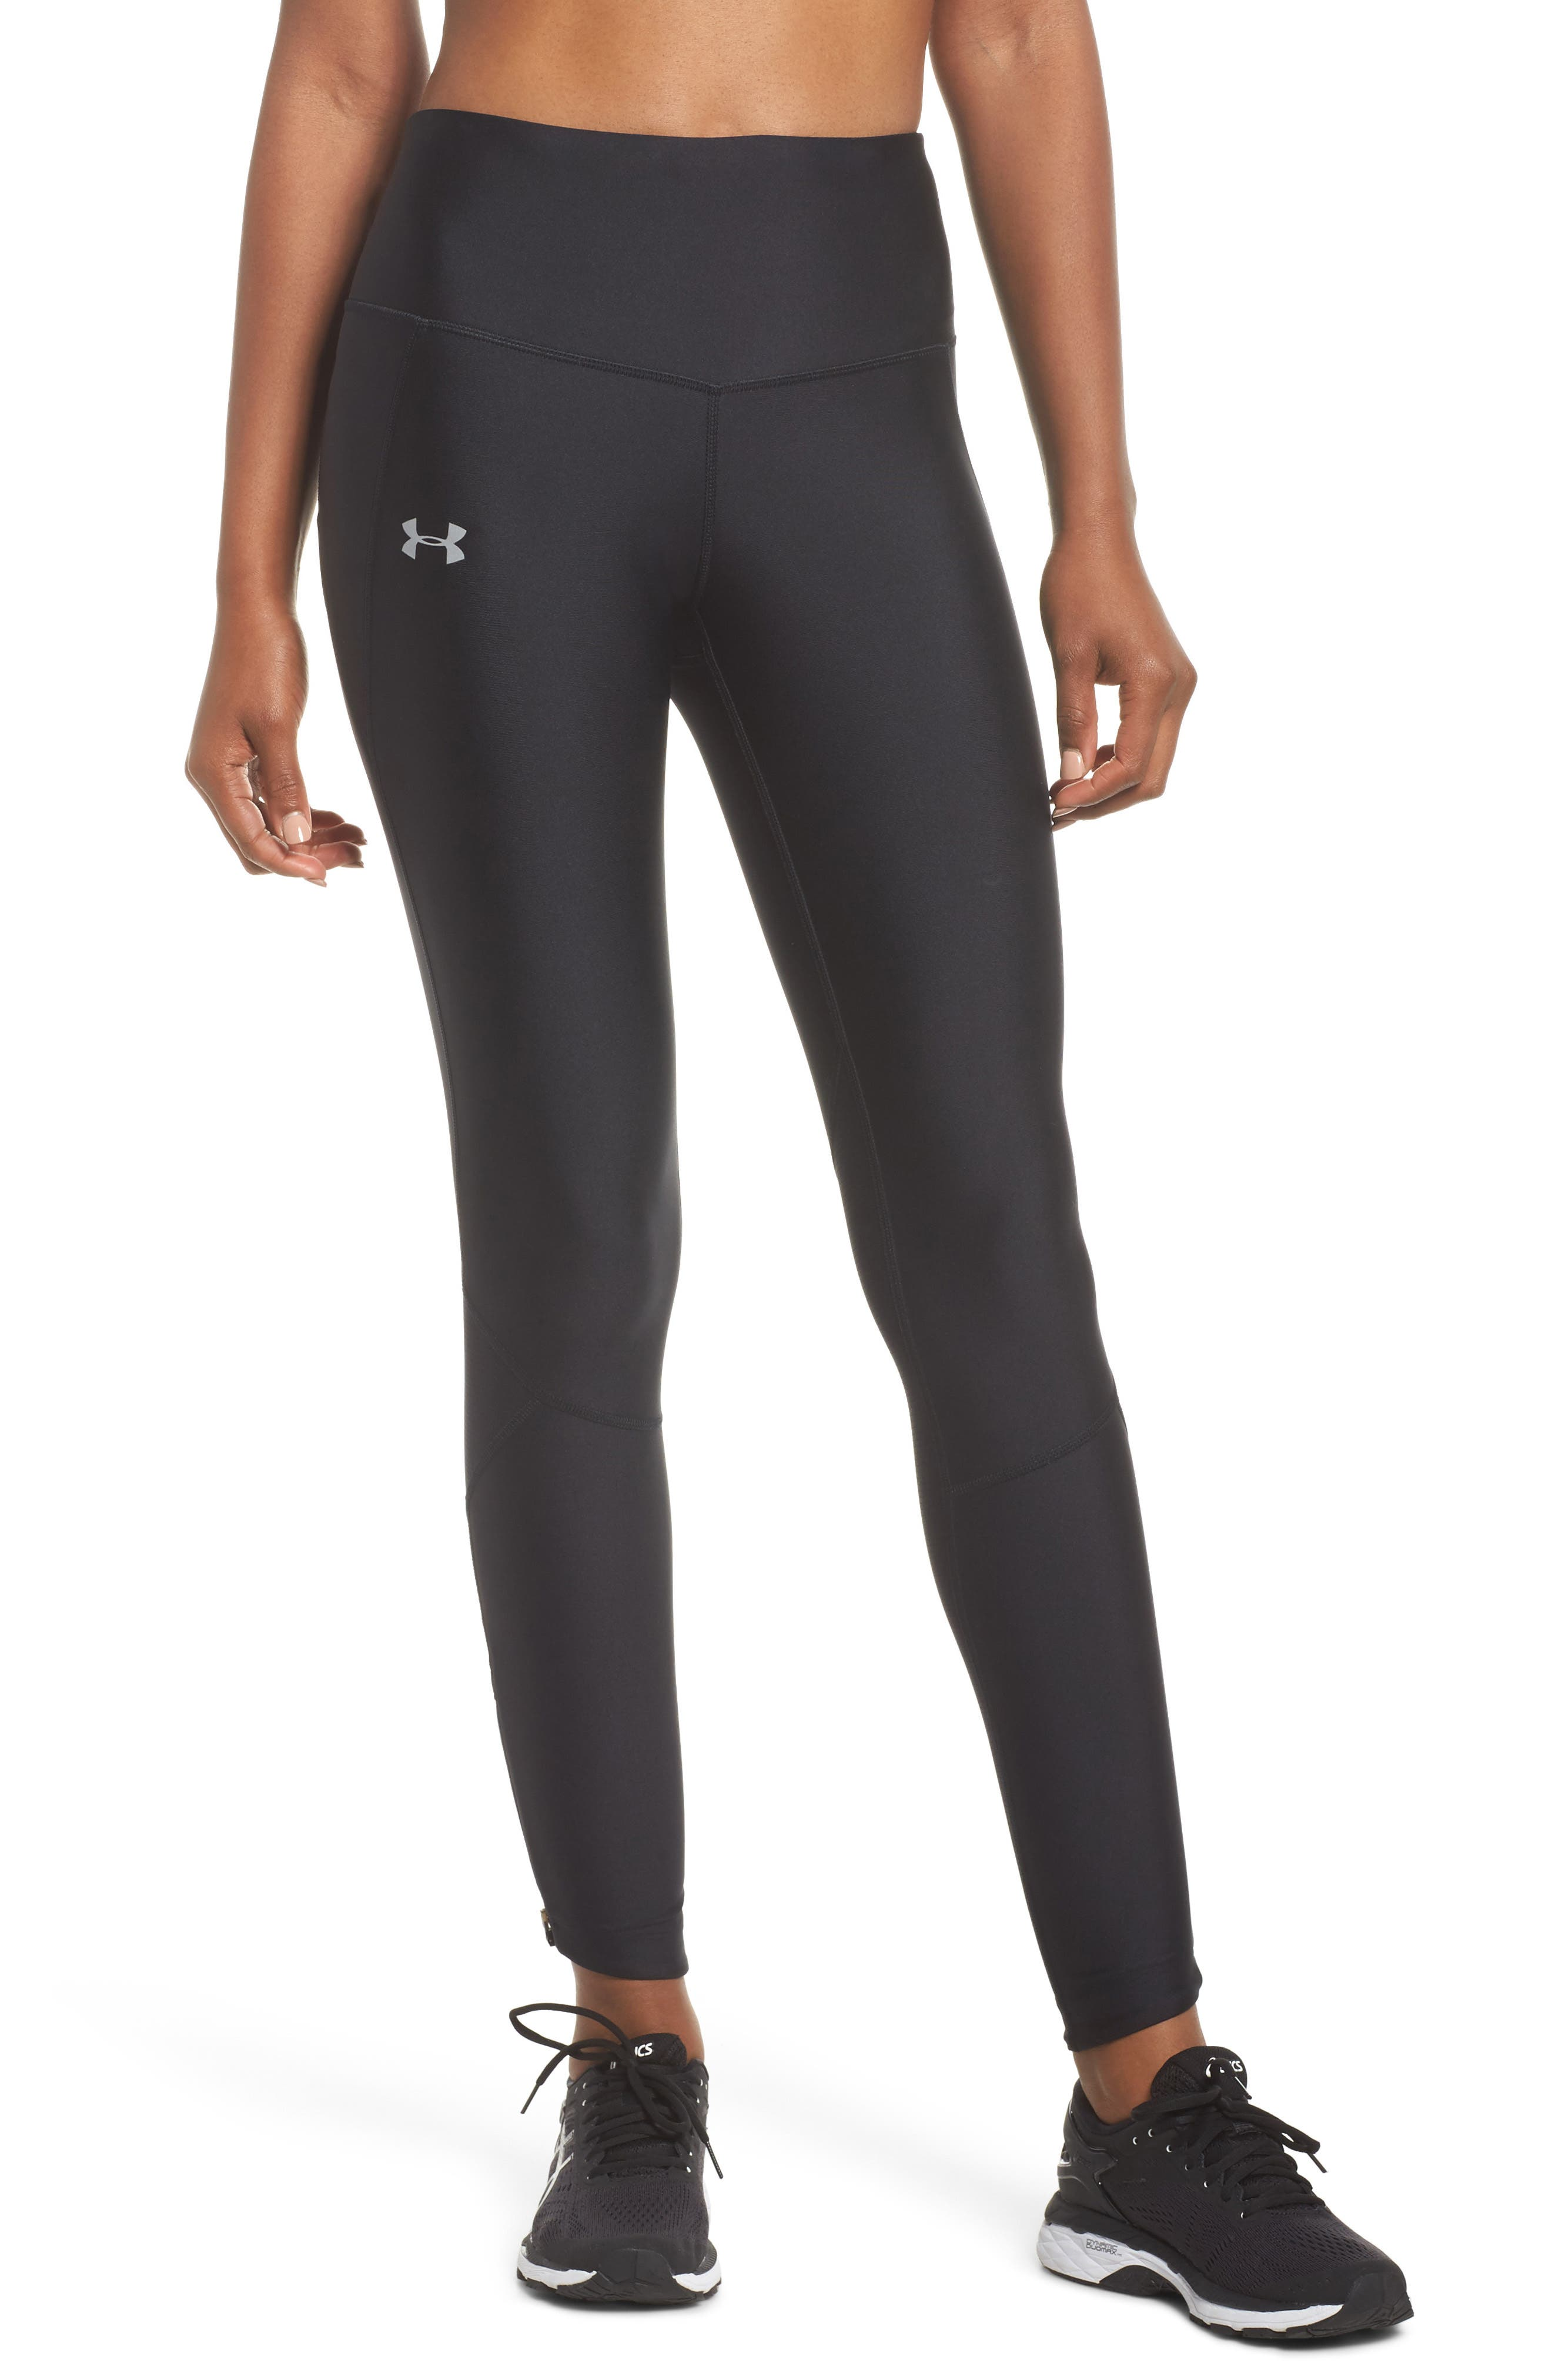 Fly Fast Tights,                         Main,                         color,